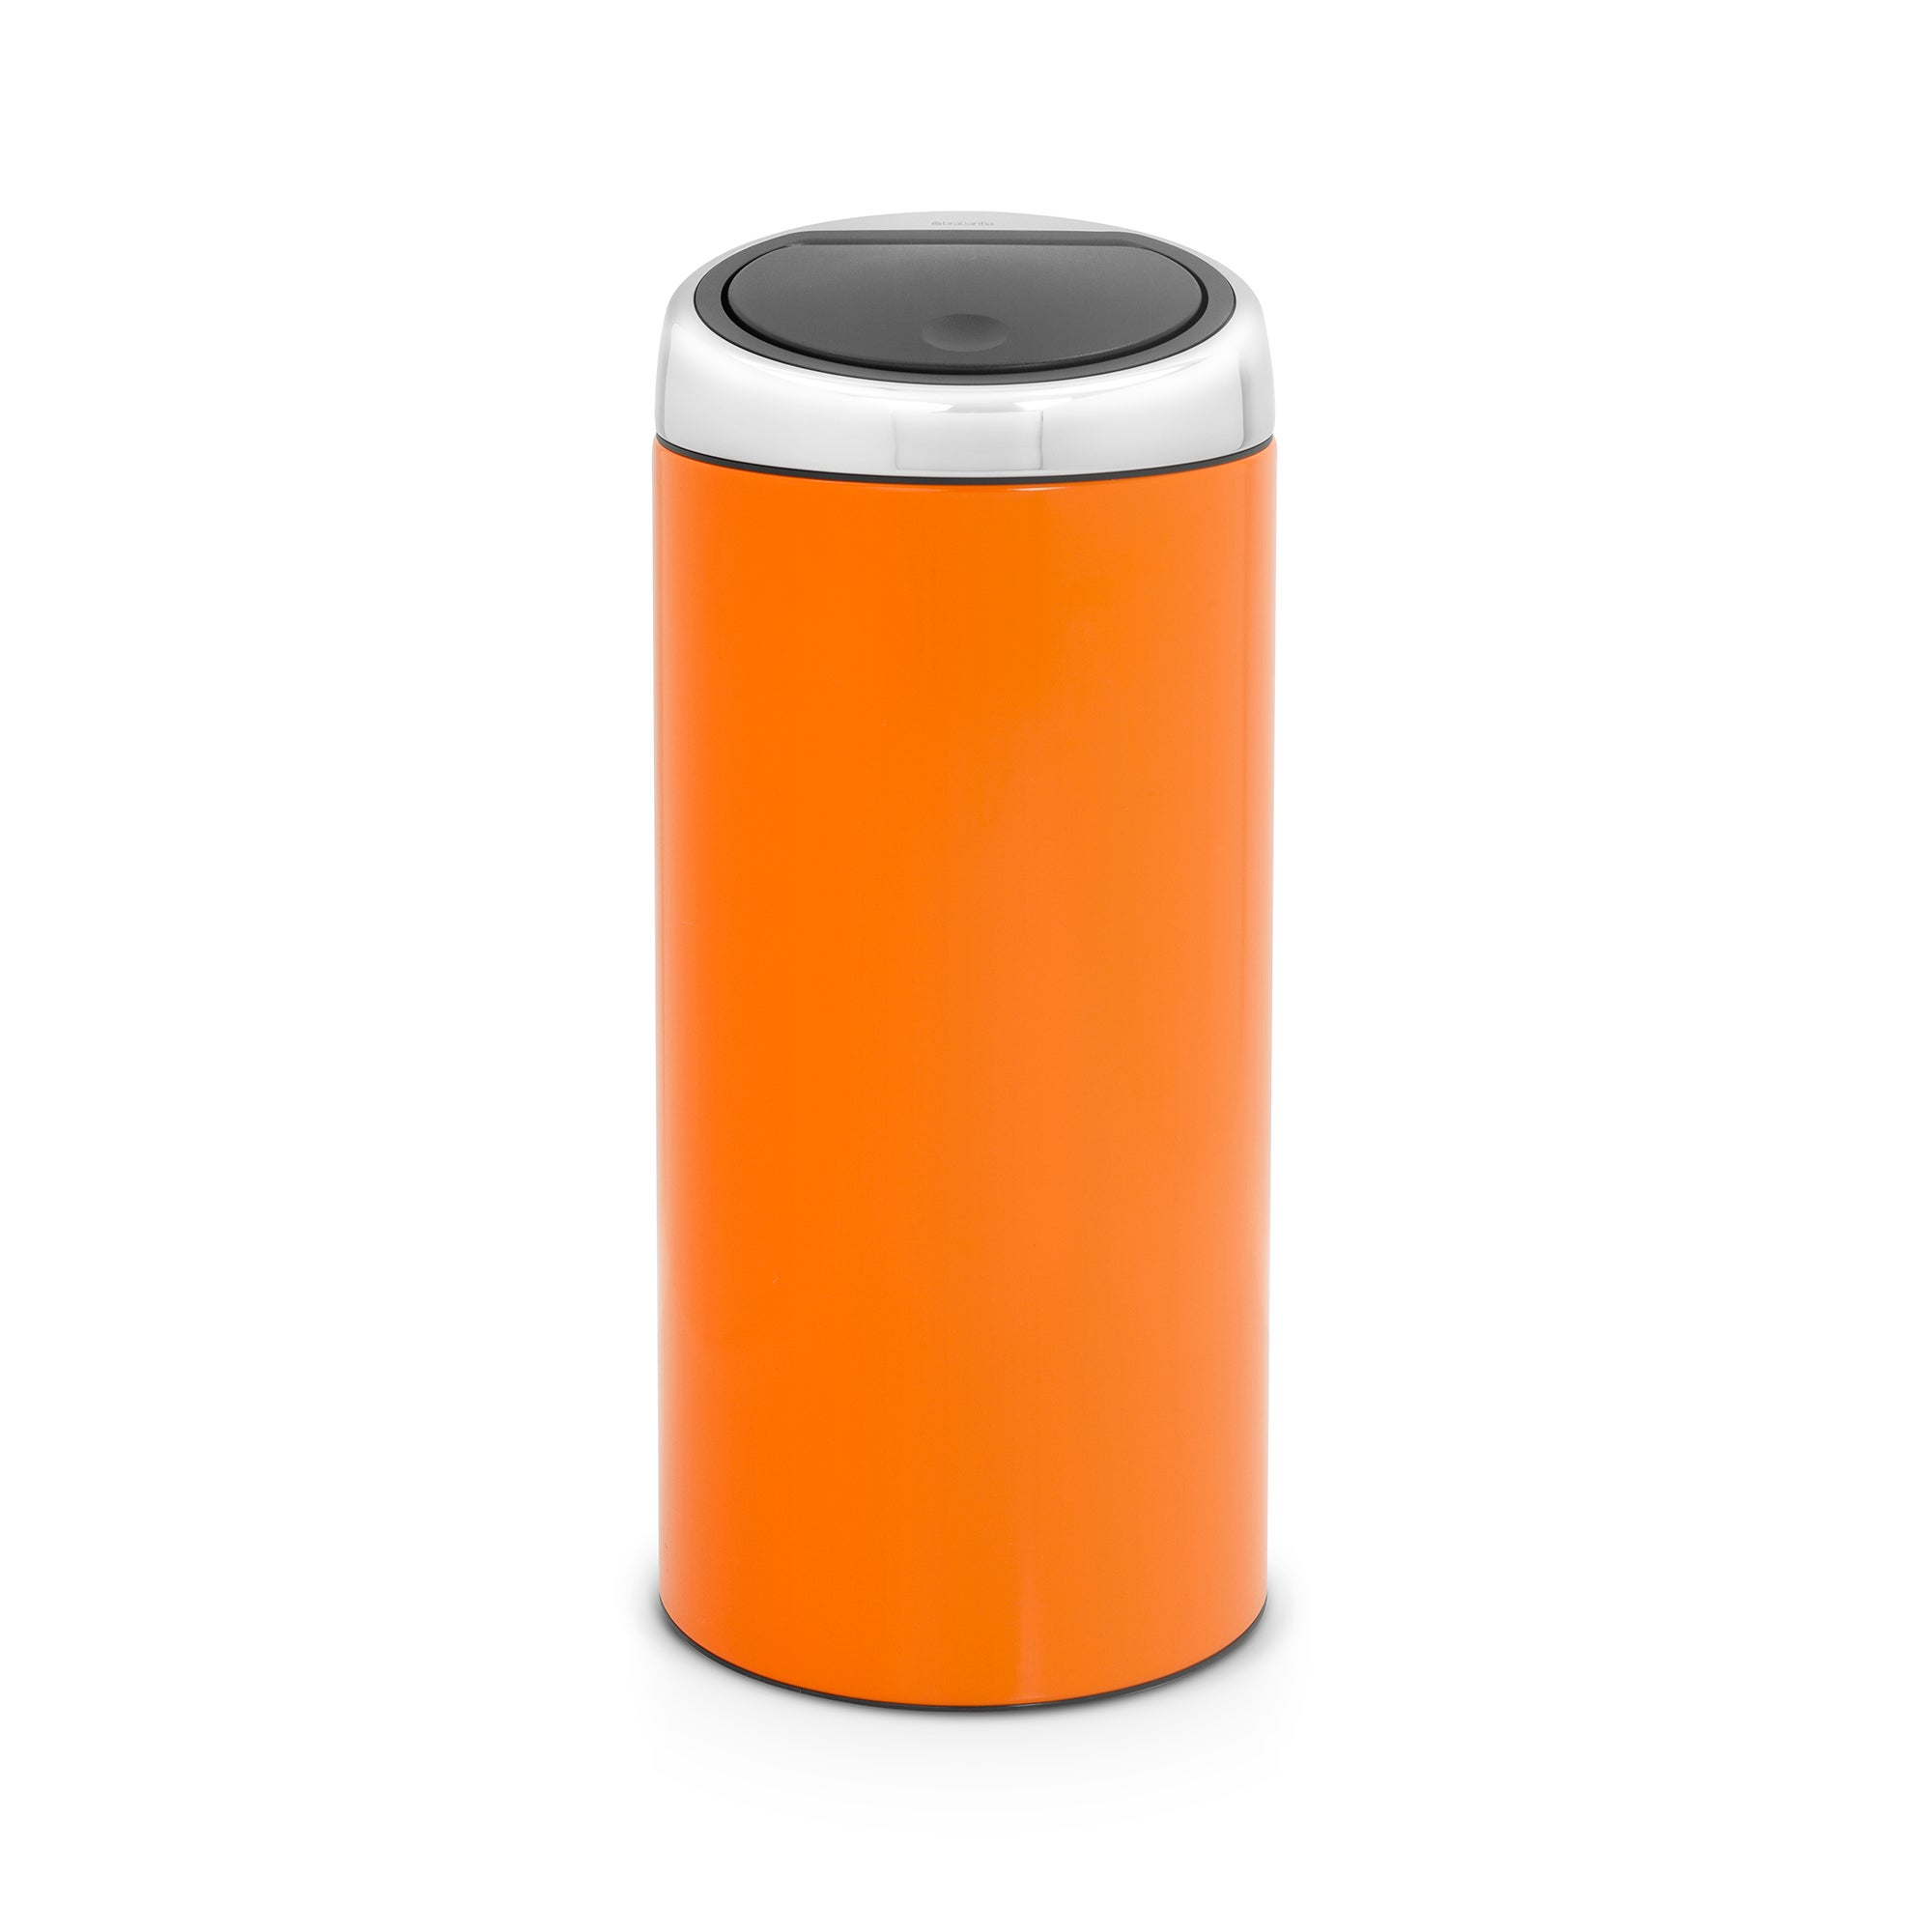 Brabantia Orange 30 Litre Lacquered Steel Touch Bin